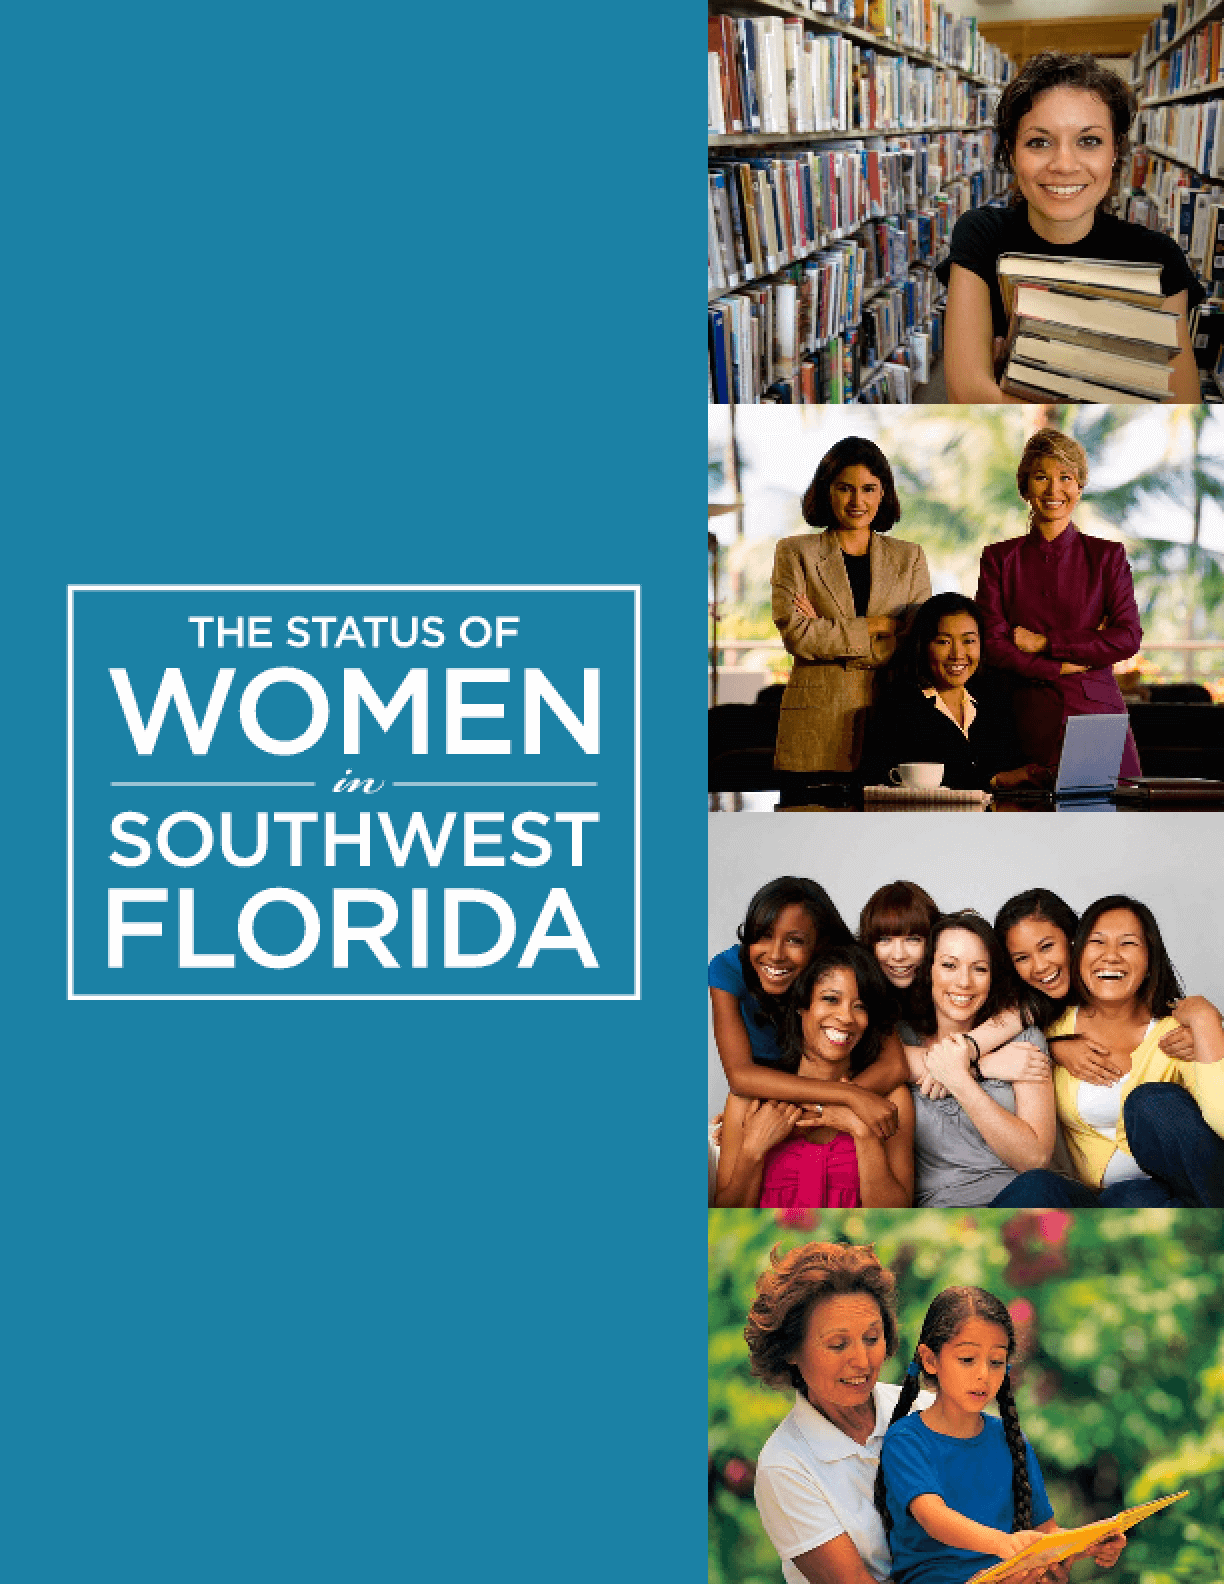 The Status of Women in Southwest Florida